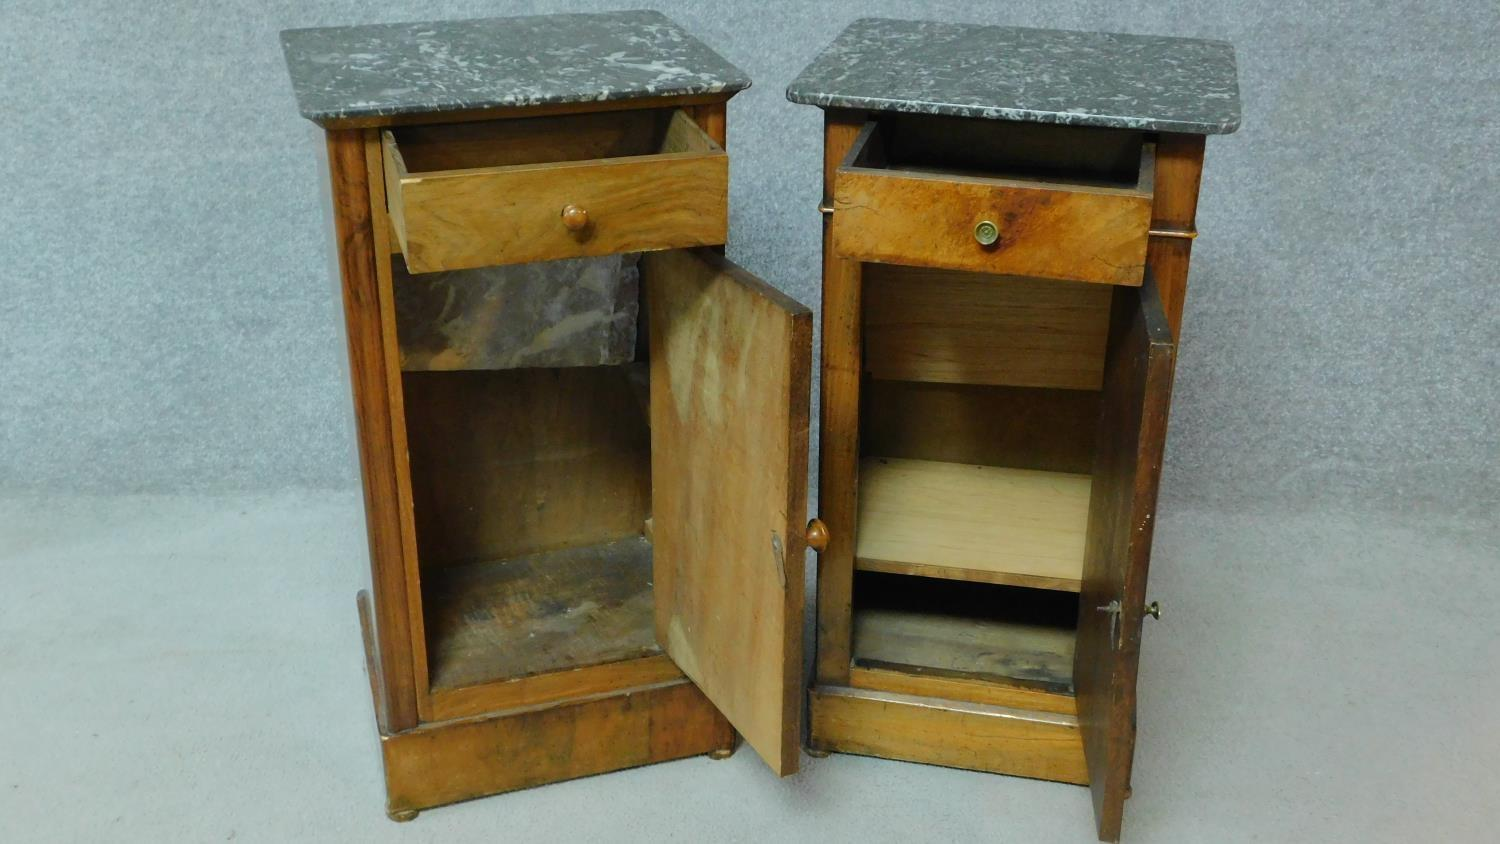 A near pair of 19th century Continental walnut bedside cabinets with grey veined marble tops and - Image 2 of 5